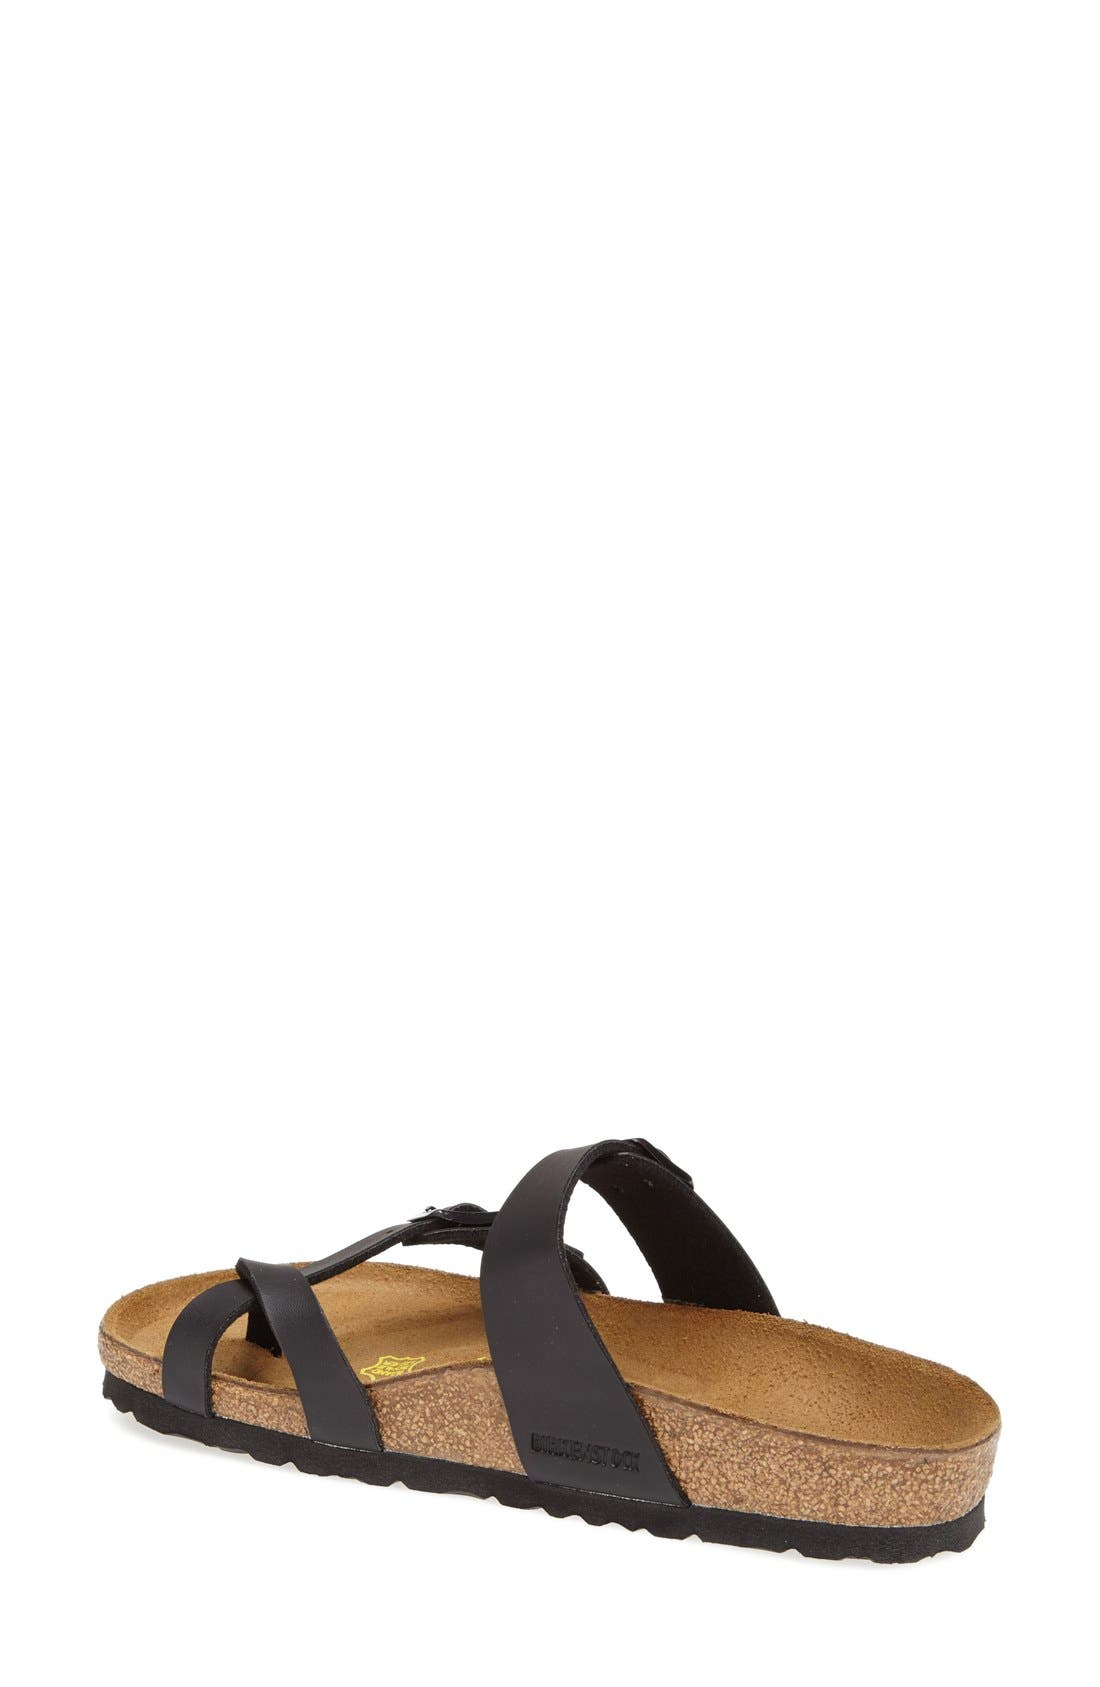 Mayari Birko-Flor Sandal,                             Alternate thumbnail 3, color,                             BLACK